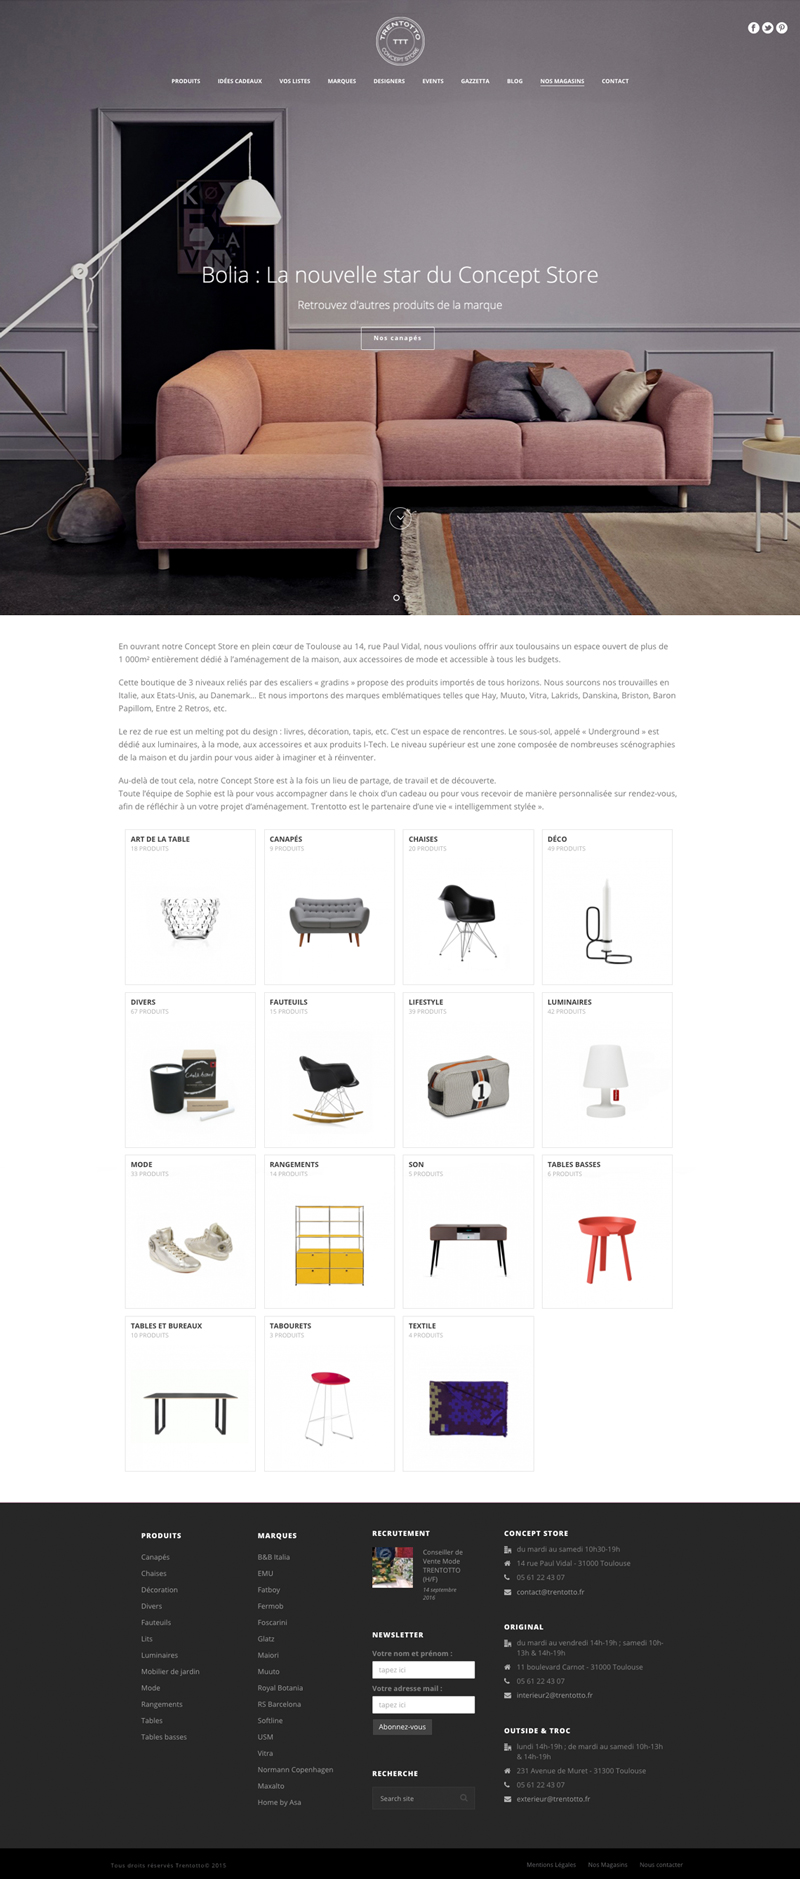 site-internet-boutique-catalogue-mobilier-design-italien-retro-trentotto-autograff-graphiste-freelance-toulouse-page